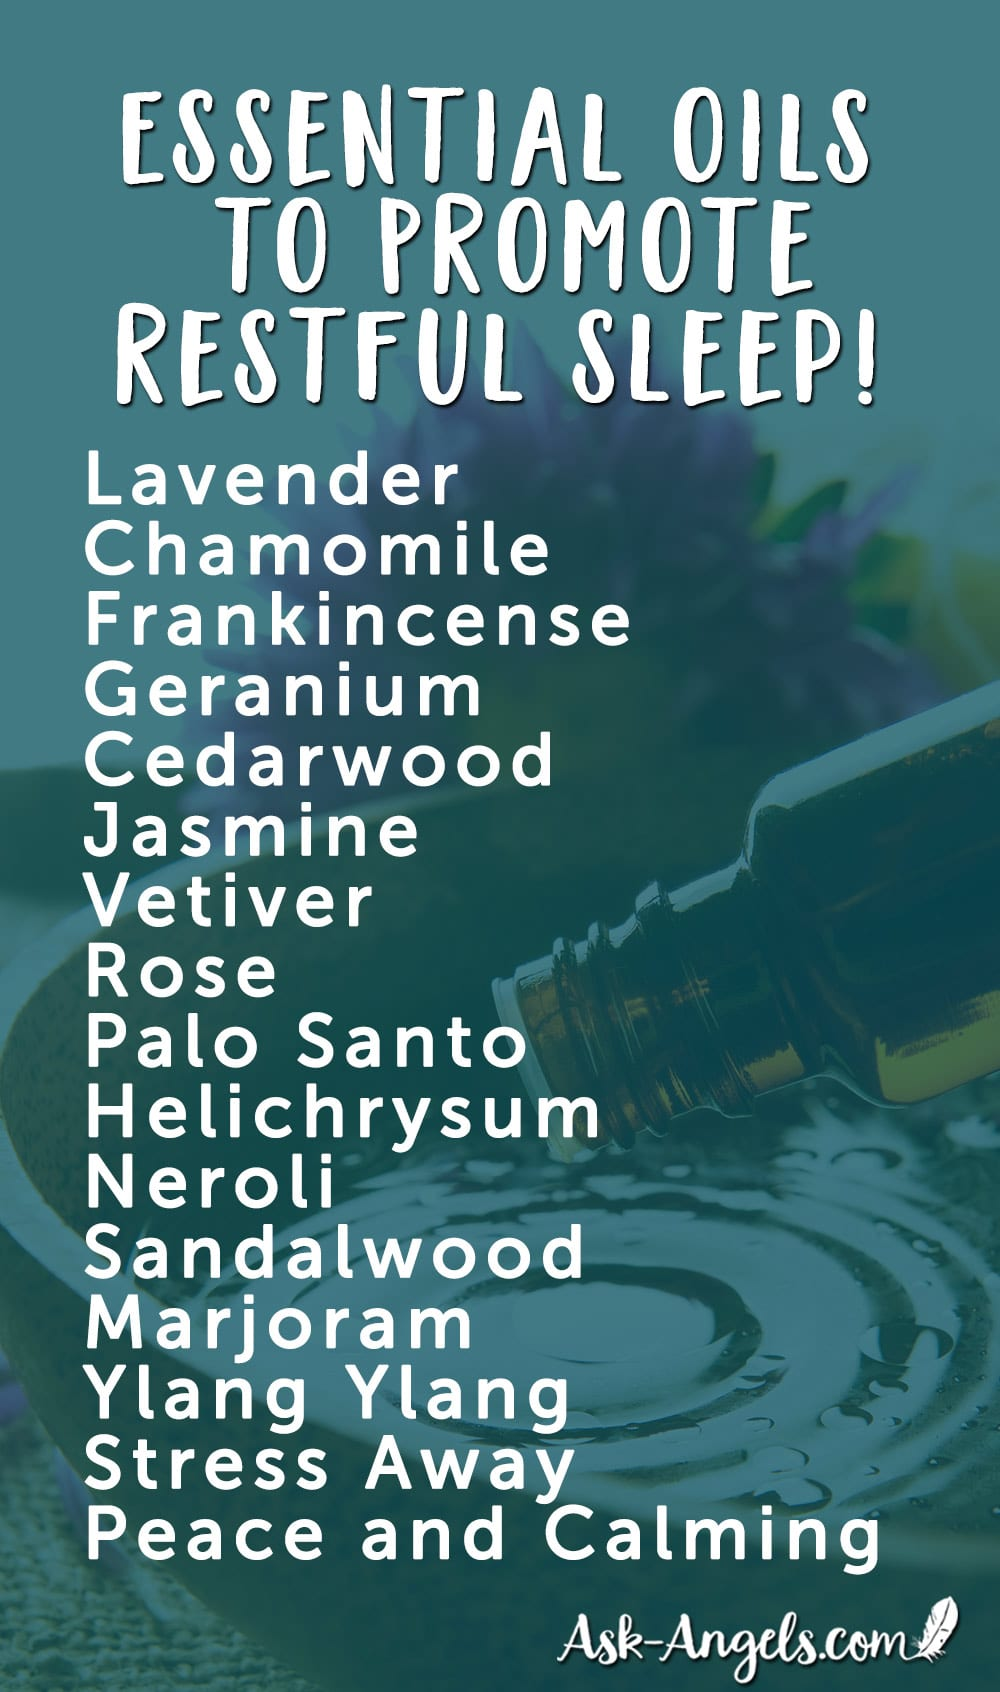 Essential Oils to Promote Restful Sleep